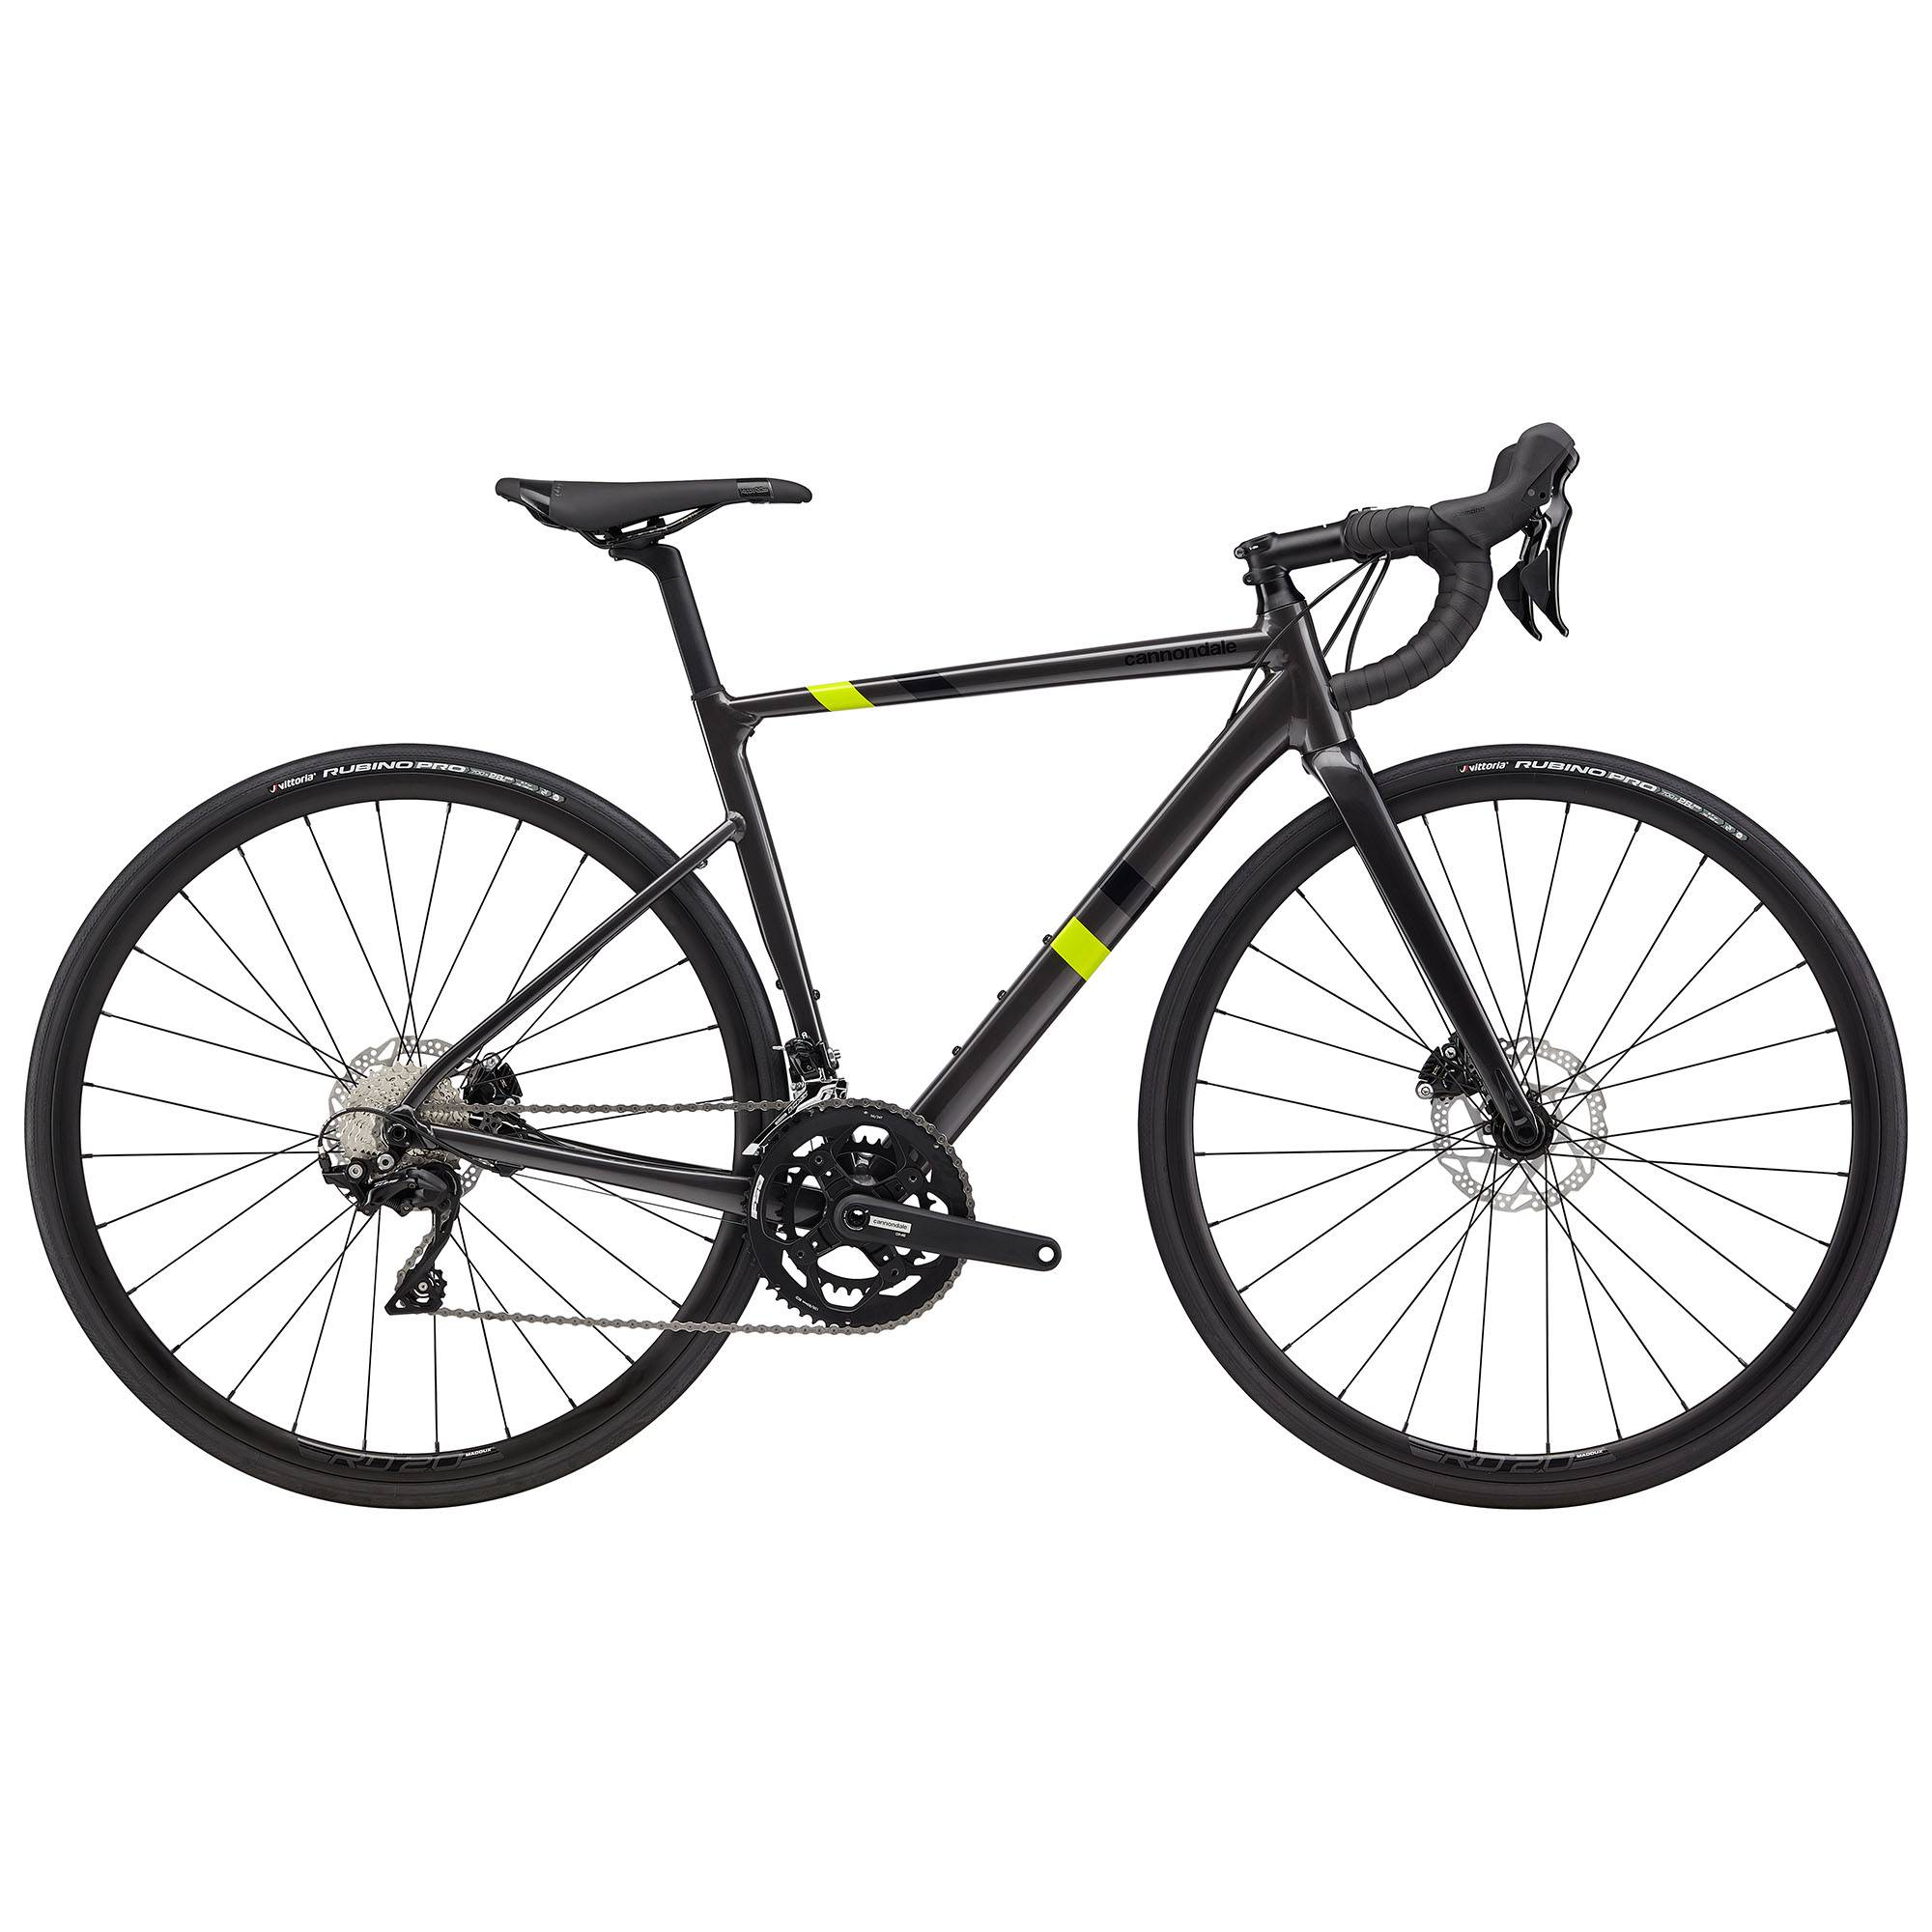 Cannondale Women's CAAD13 Disc 105 Performance Road Bike '20  - Graphite - Size: 48